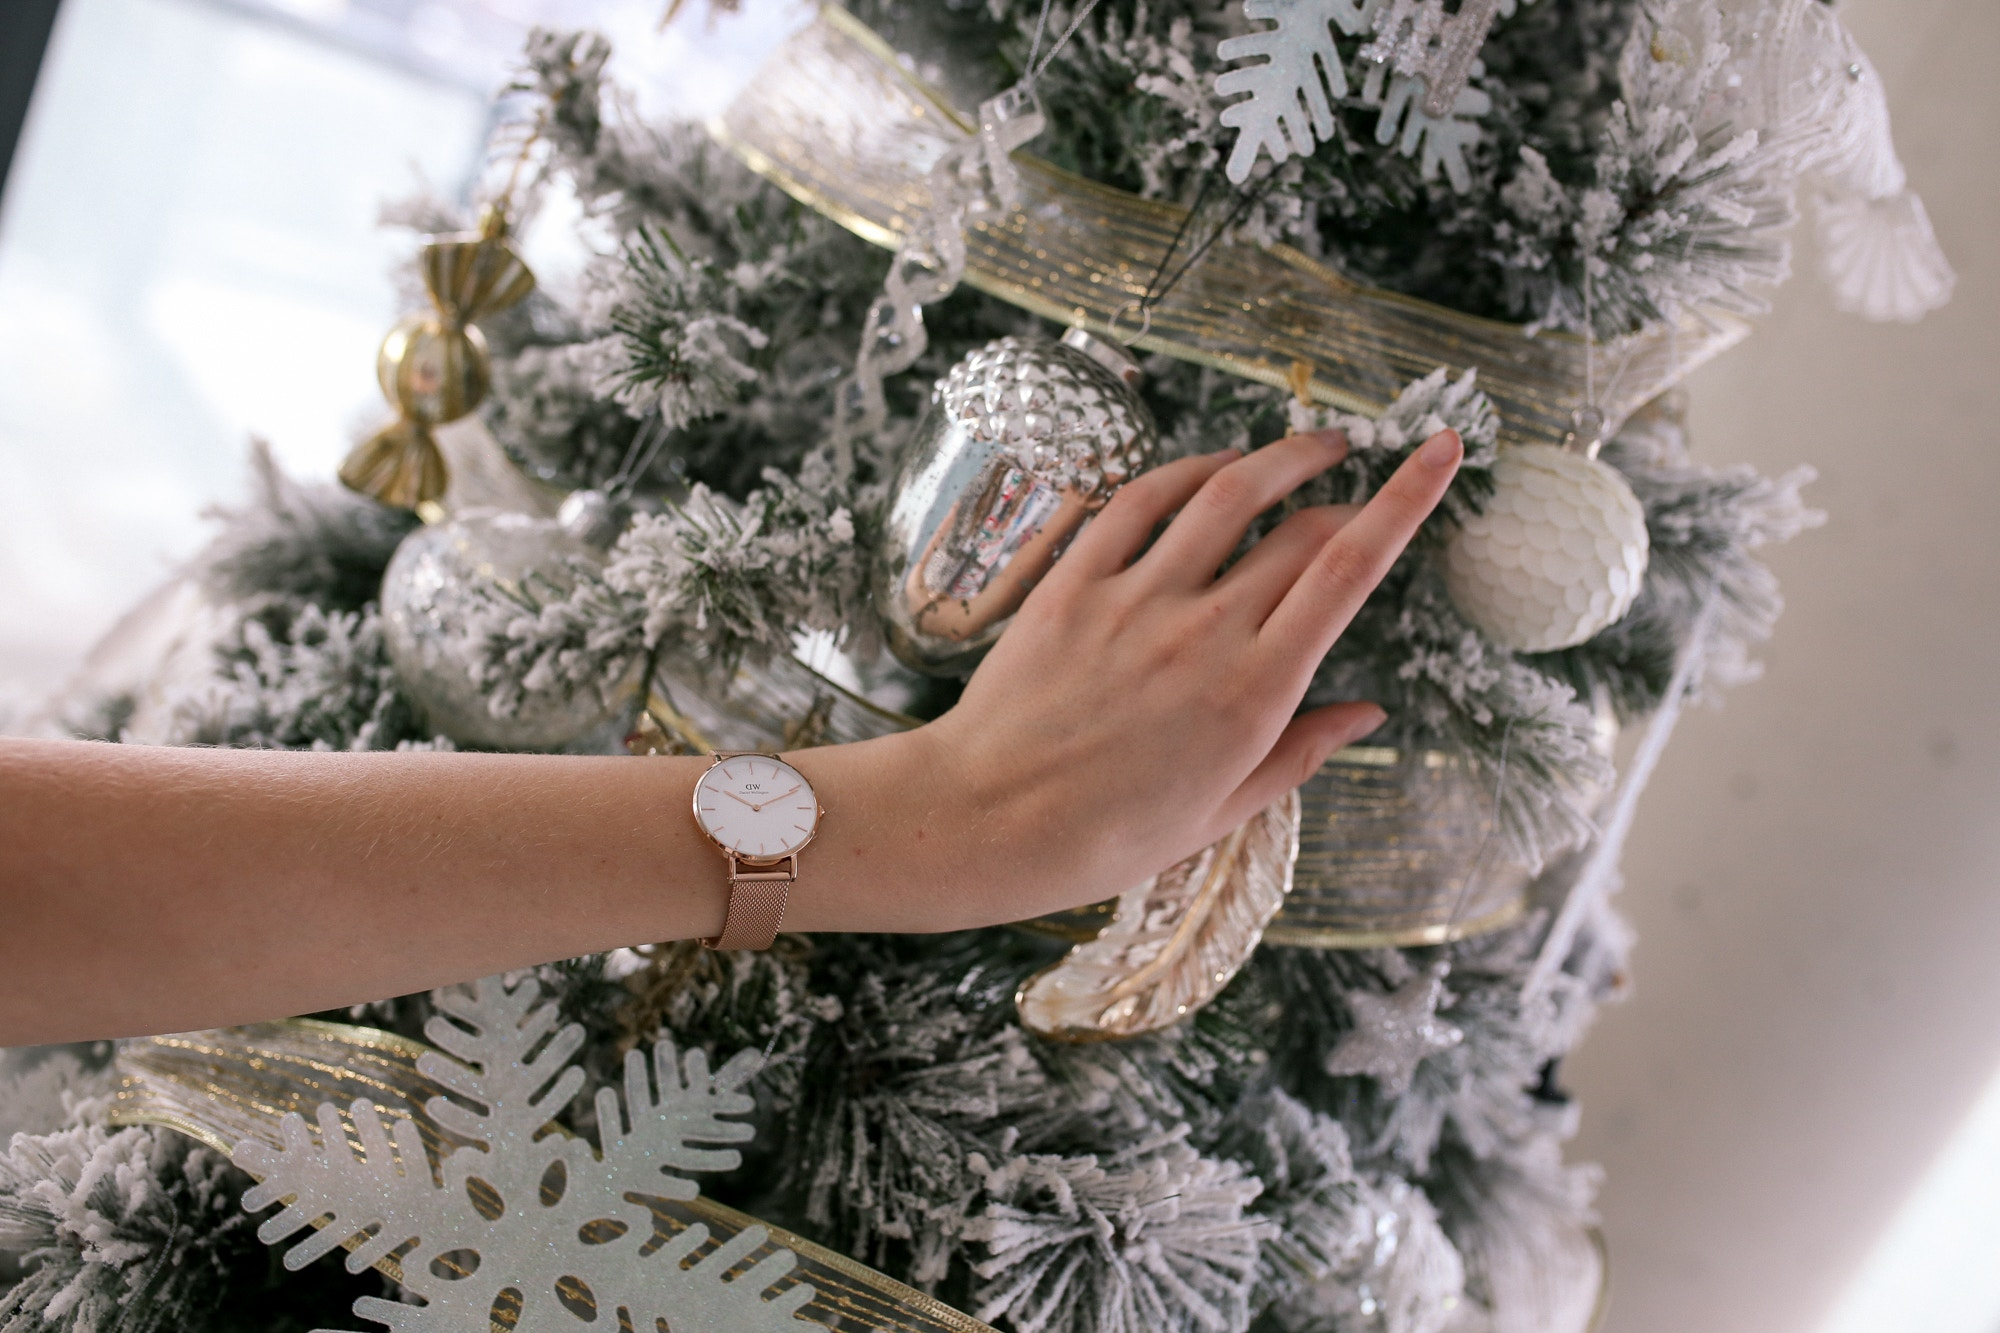 The Daniel Wellington Petite Melrose watch is a modern classic. With Milanese mesh and a white bold face, it's super chic and versatile. Enter to win your own Daniel Wellington watch in this post!